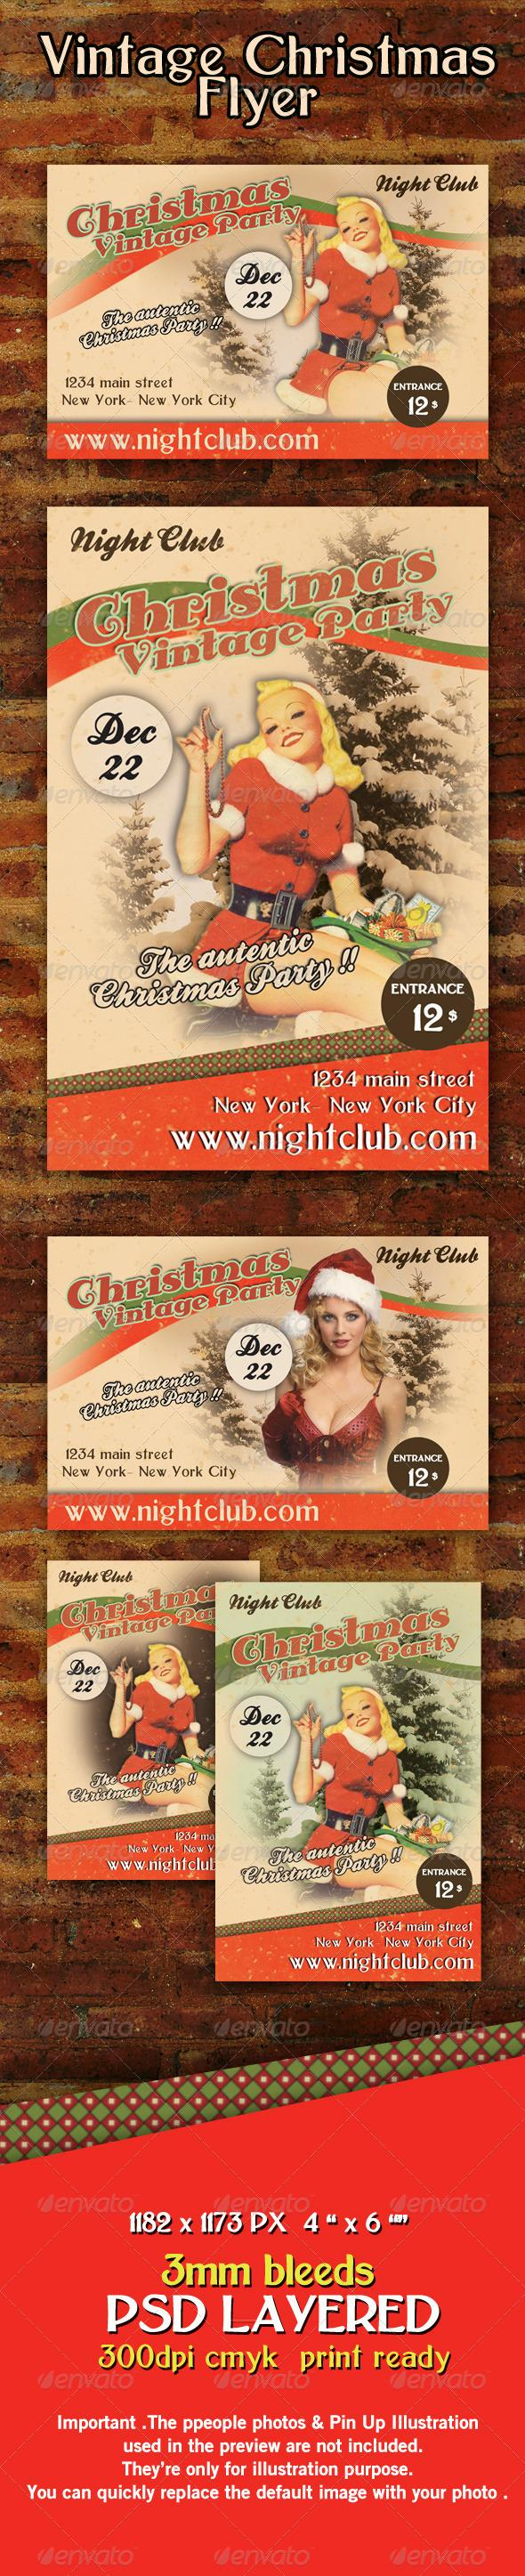 Vintage Retro Christmas Flyer Template